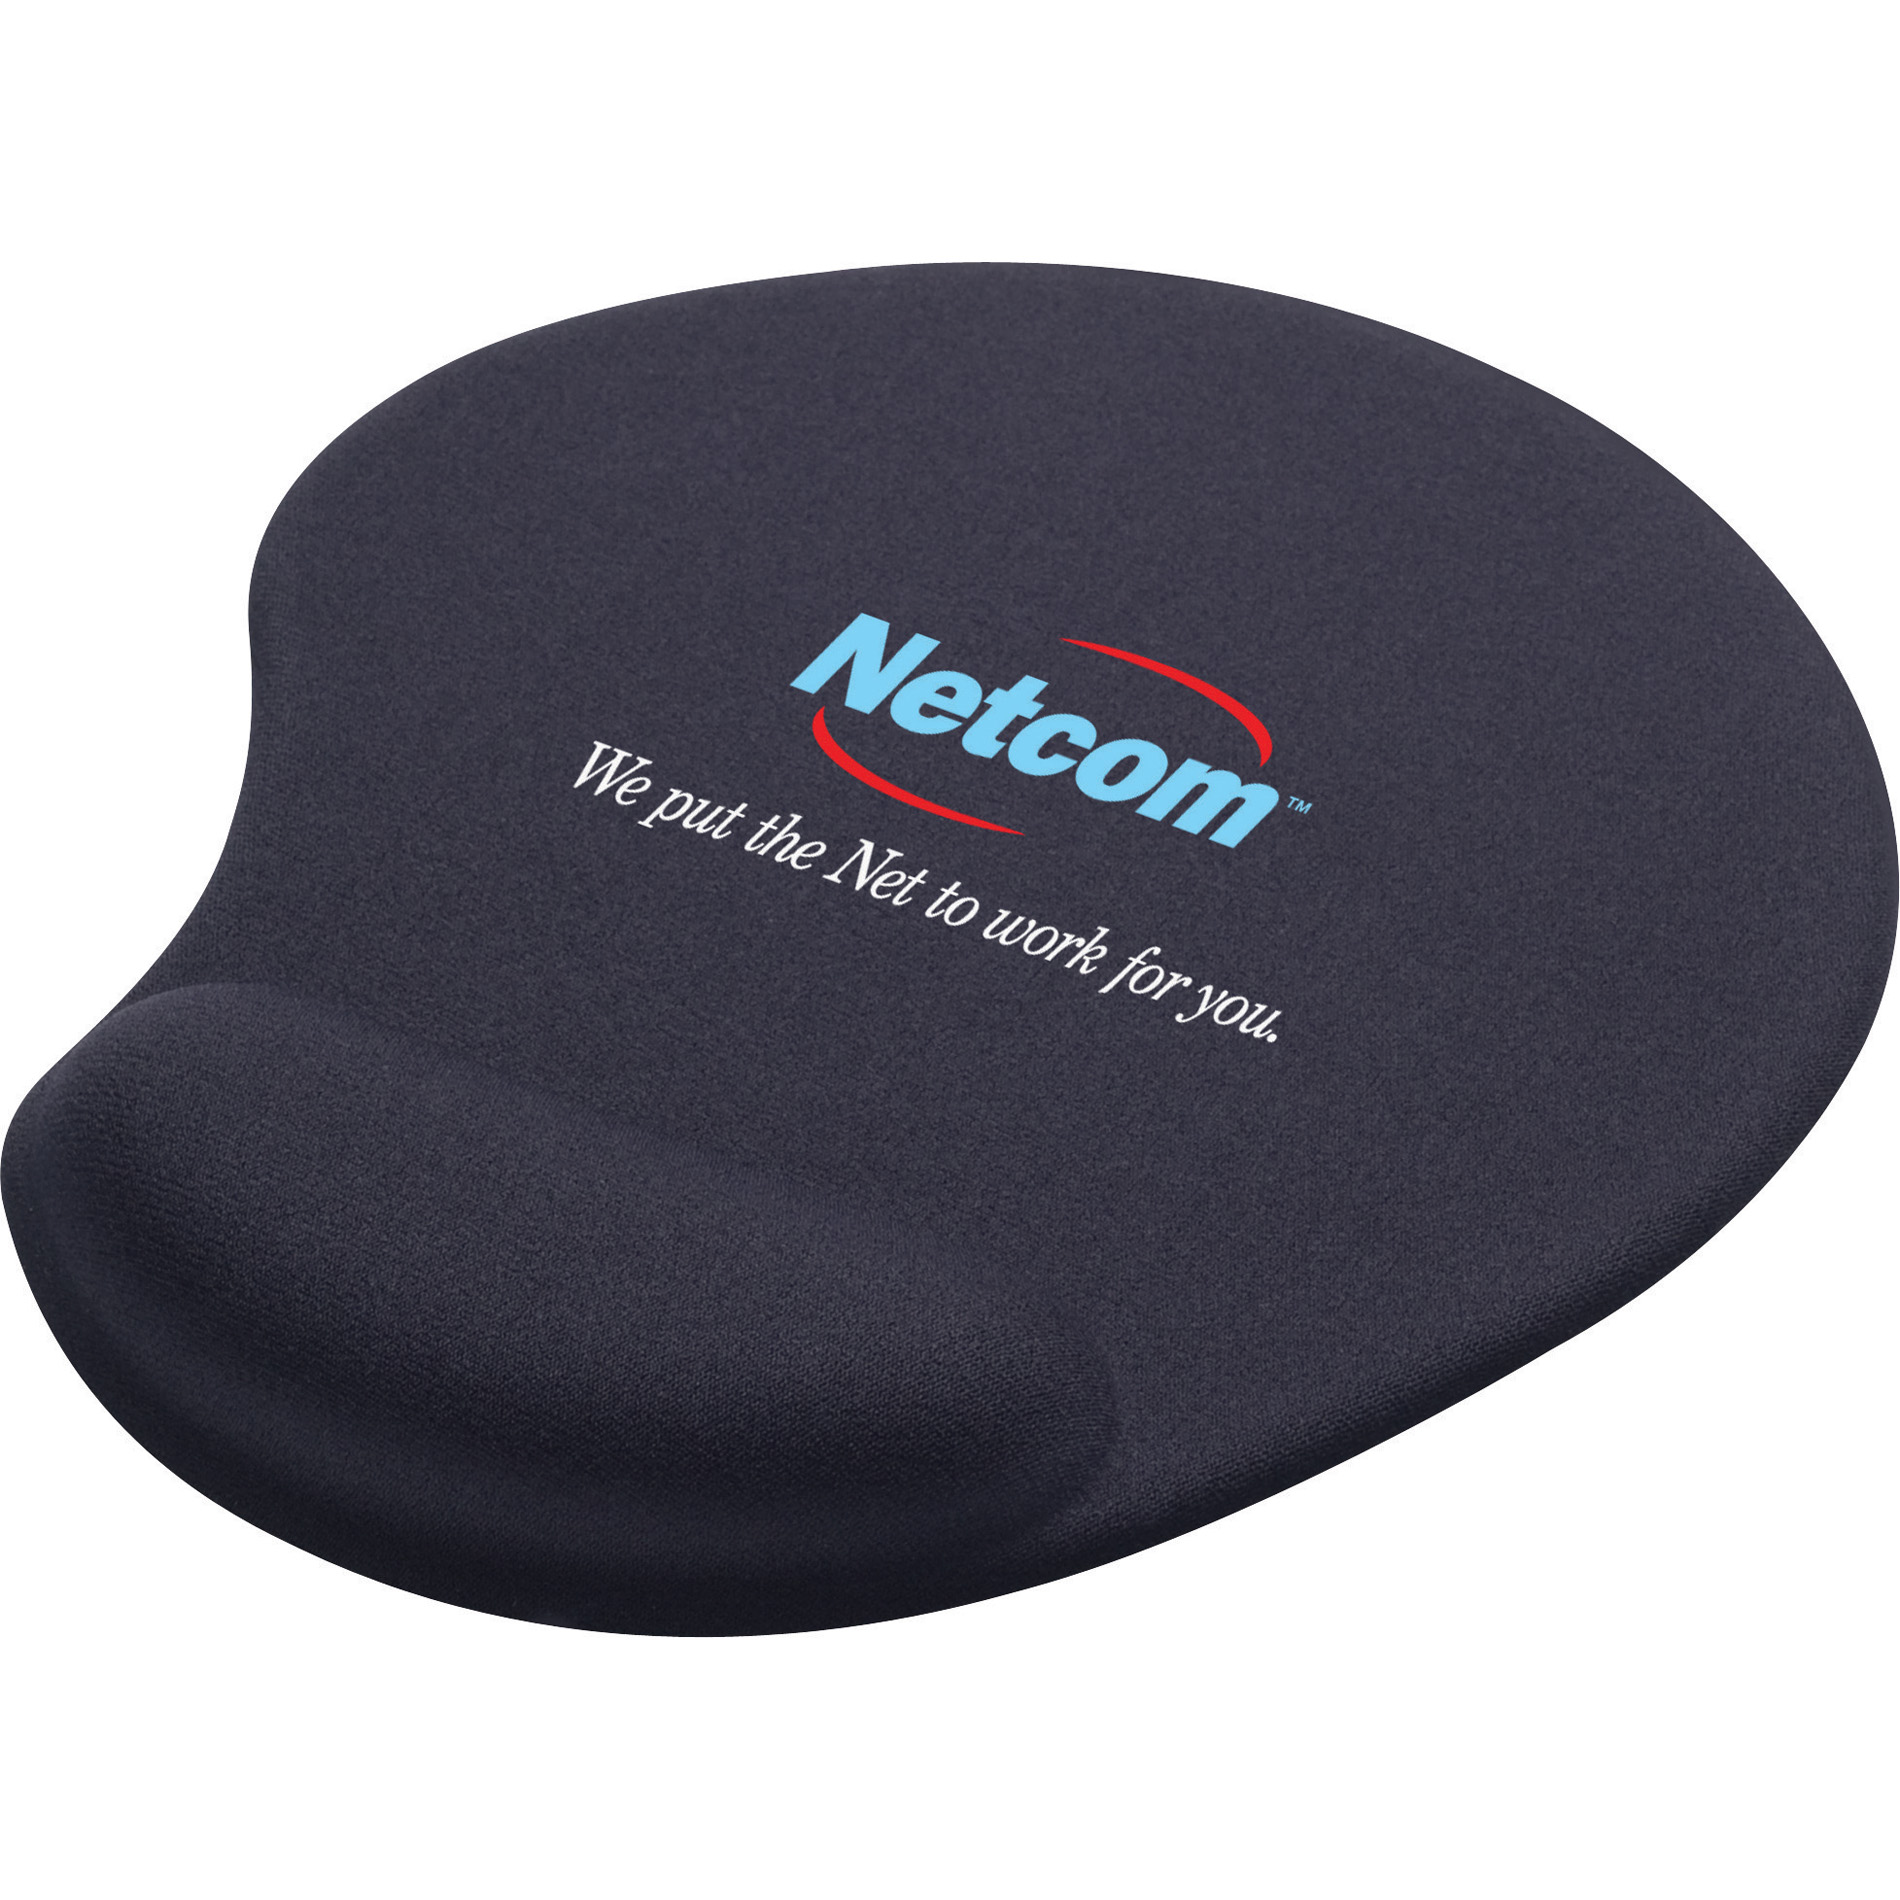 sir speedy online store solid jersey gel mouse pad wrist rest